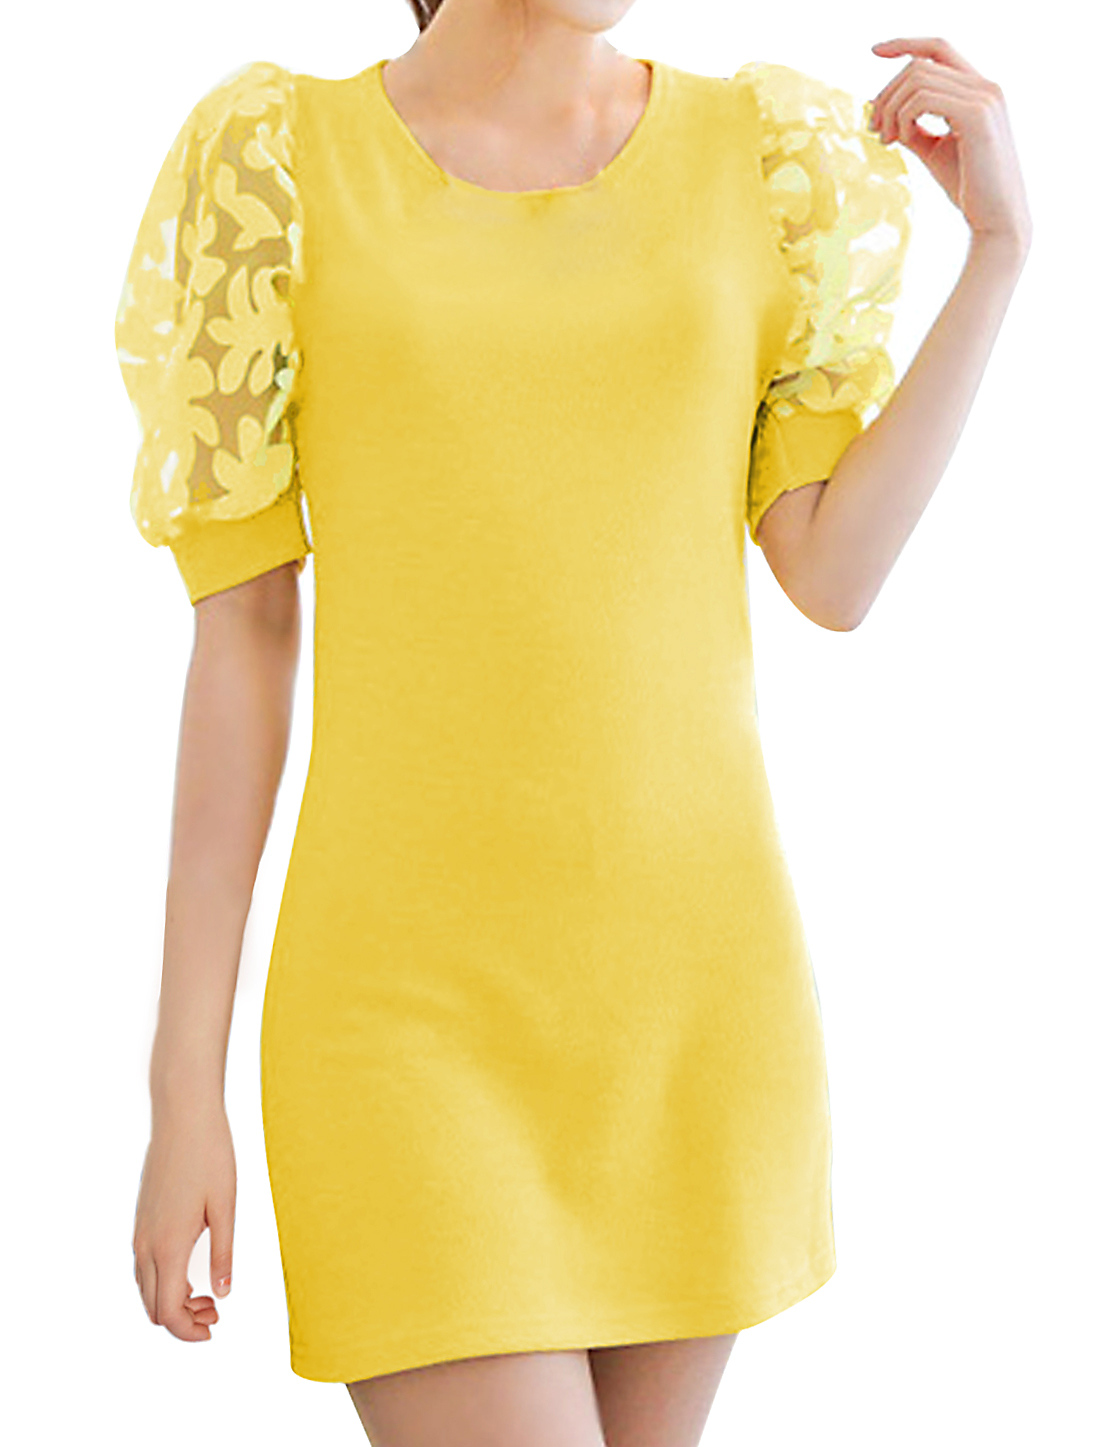 Lady Organza Panel Short-sleeved Slim Fit Sheath Dress Yellow M